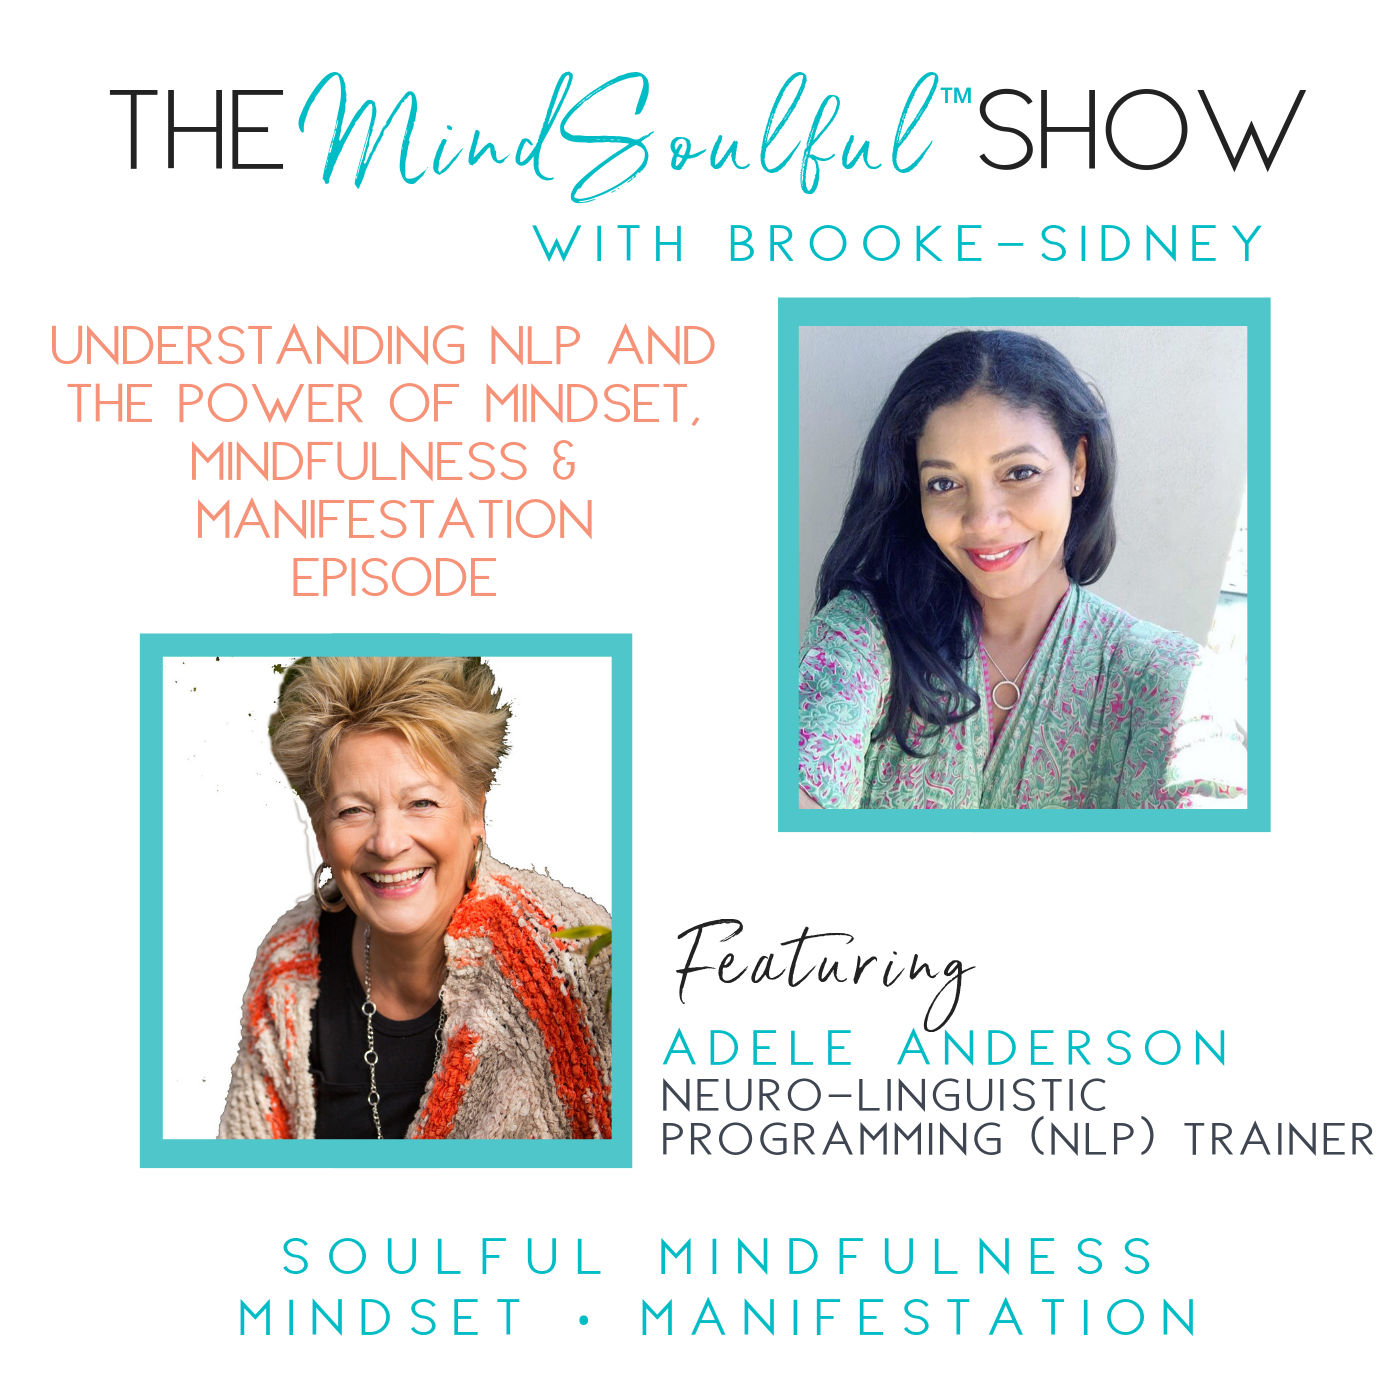 _The MindSoulful Show with Adele Anderson.png